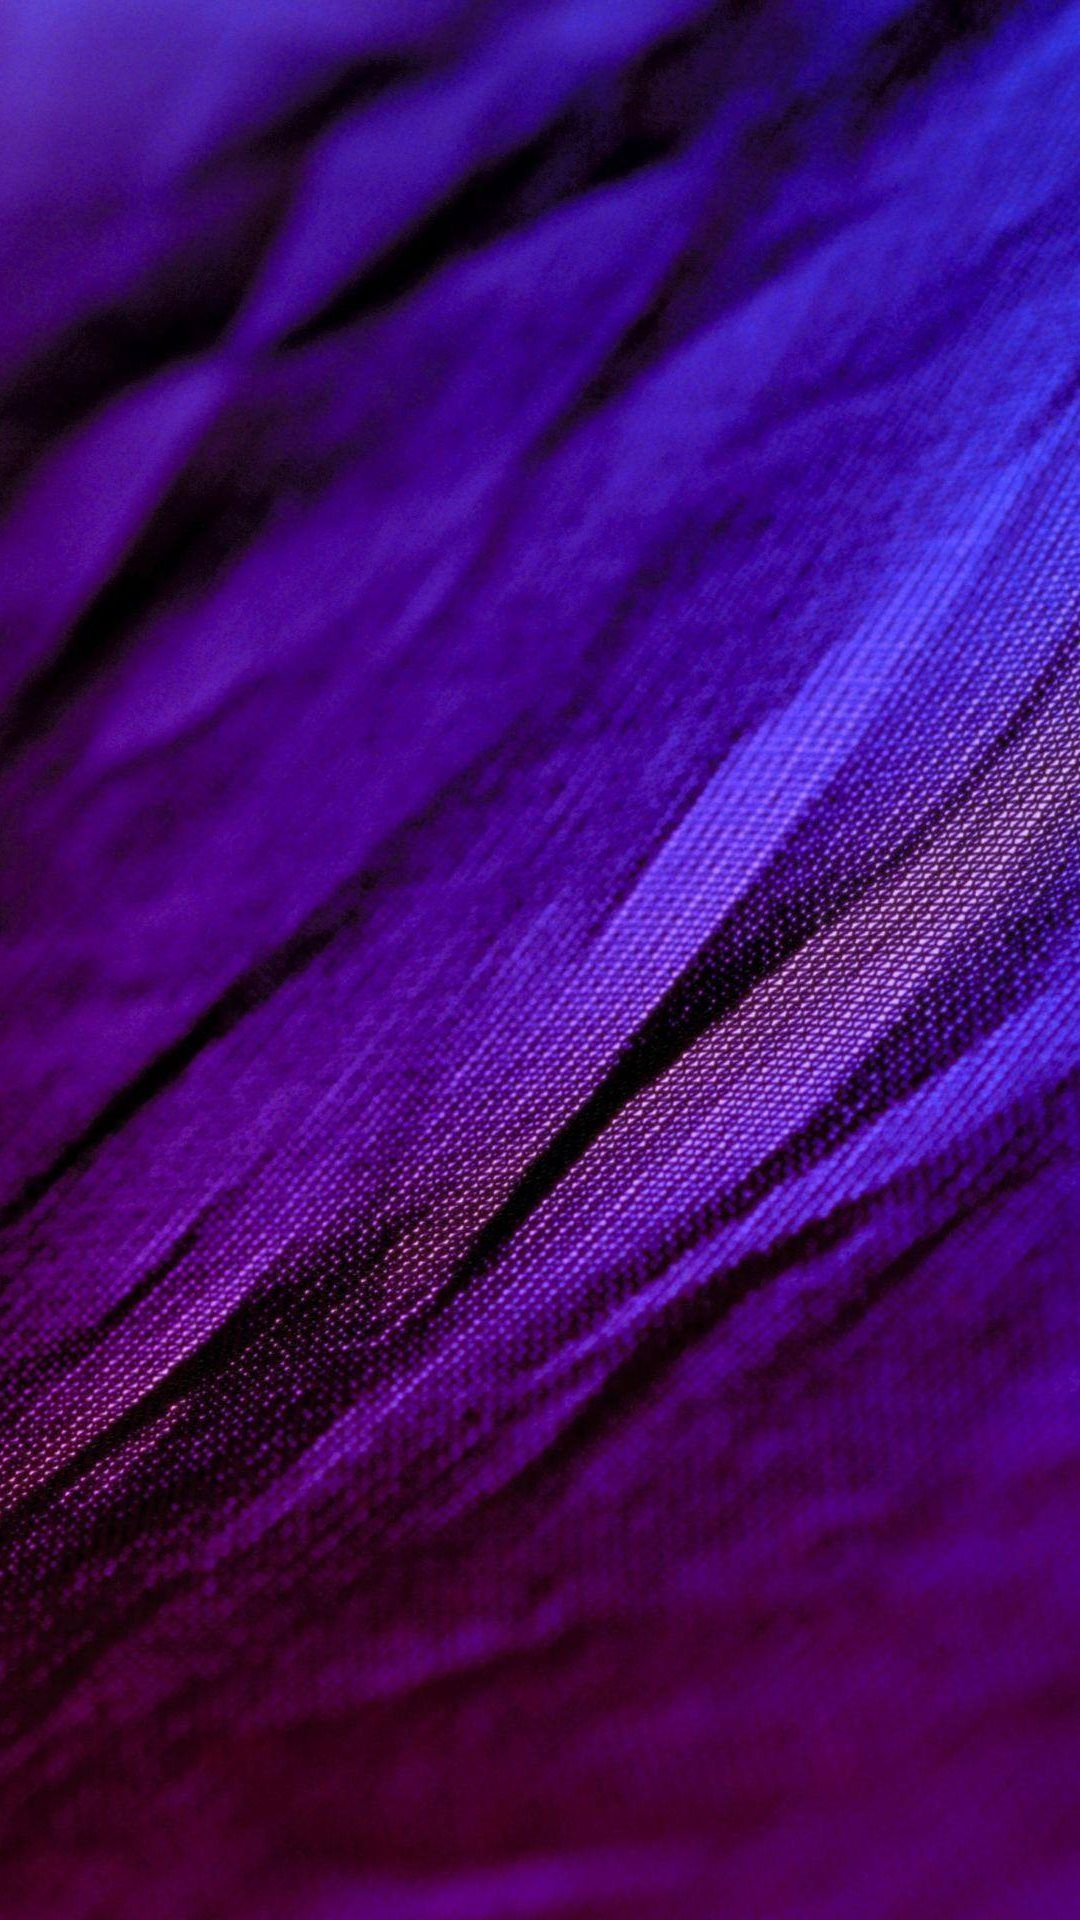 75 creative textures iphone wallpapers free to download - Purple iphone wallpaper ...